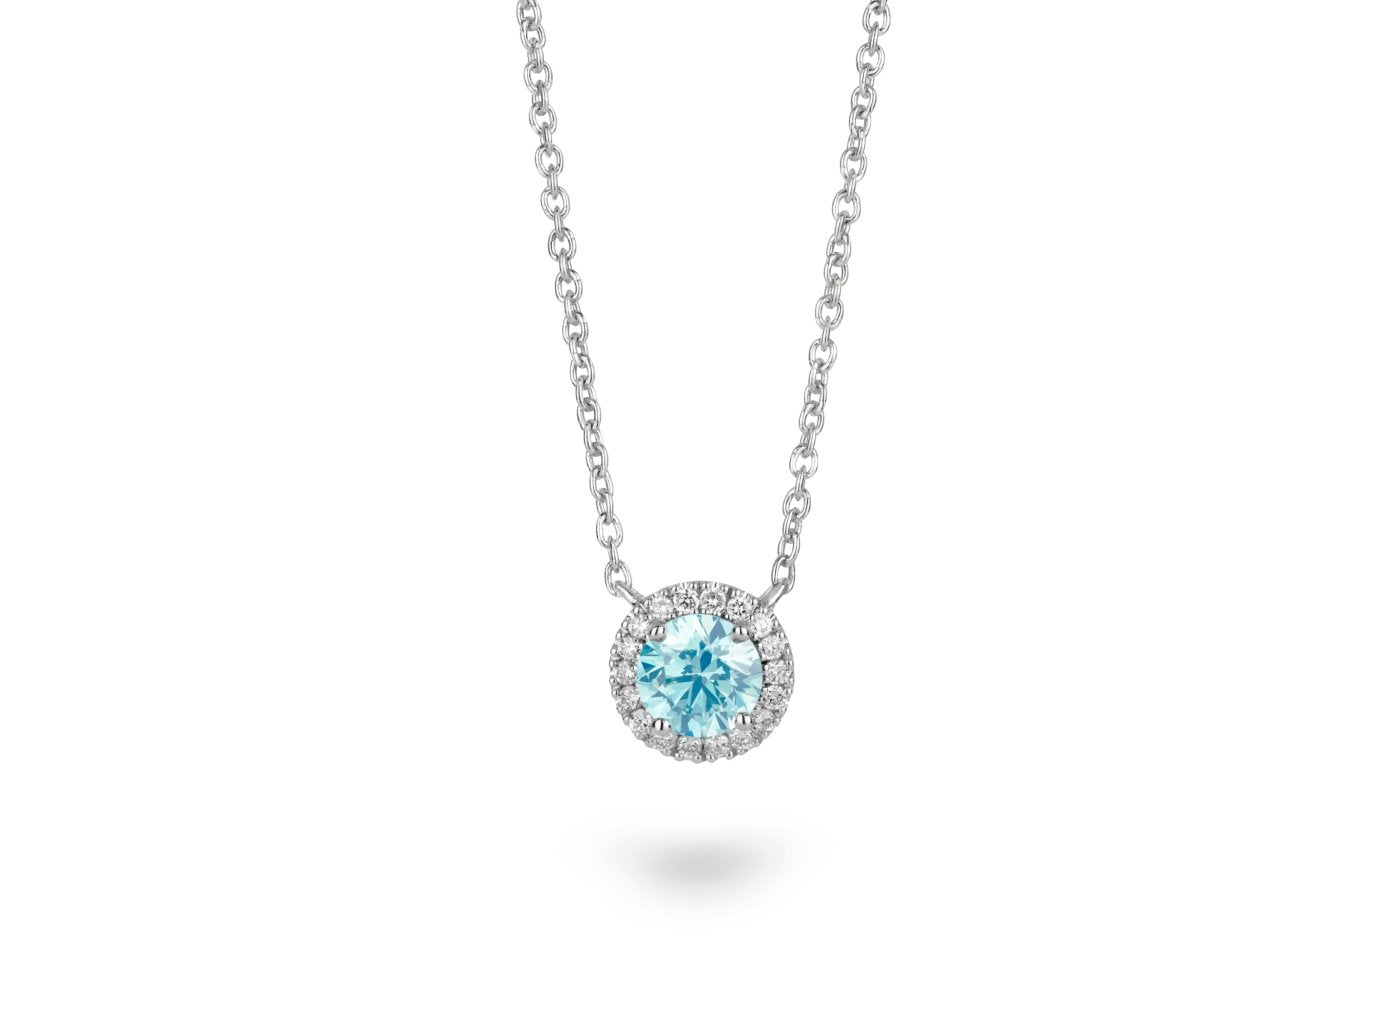 Front view of Halo 3/4 carat pendant with blue and white diamonds